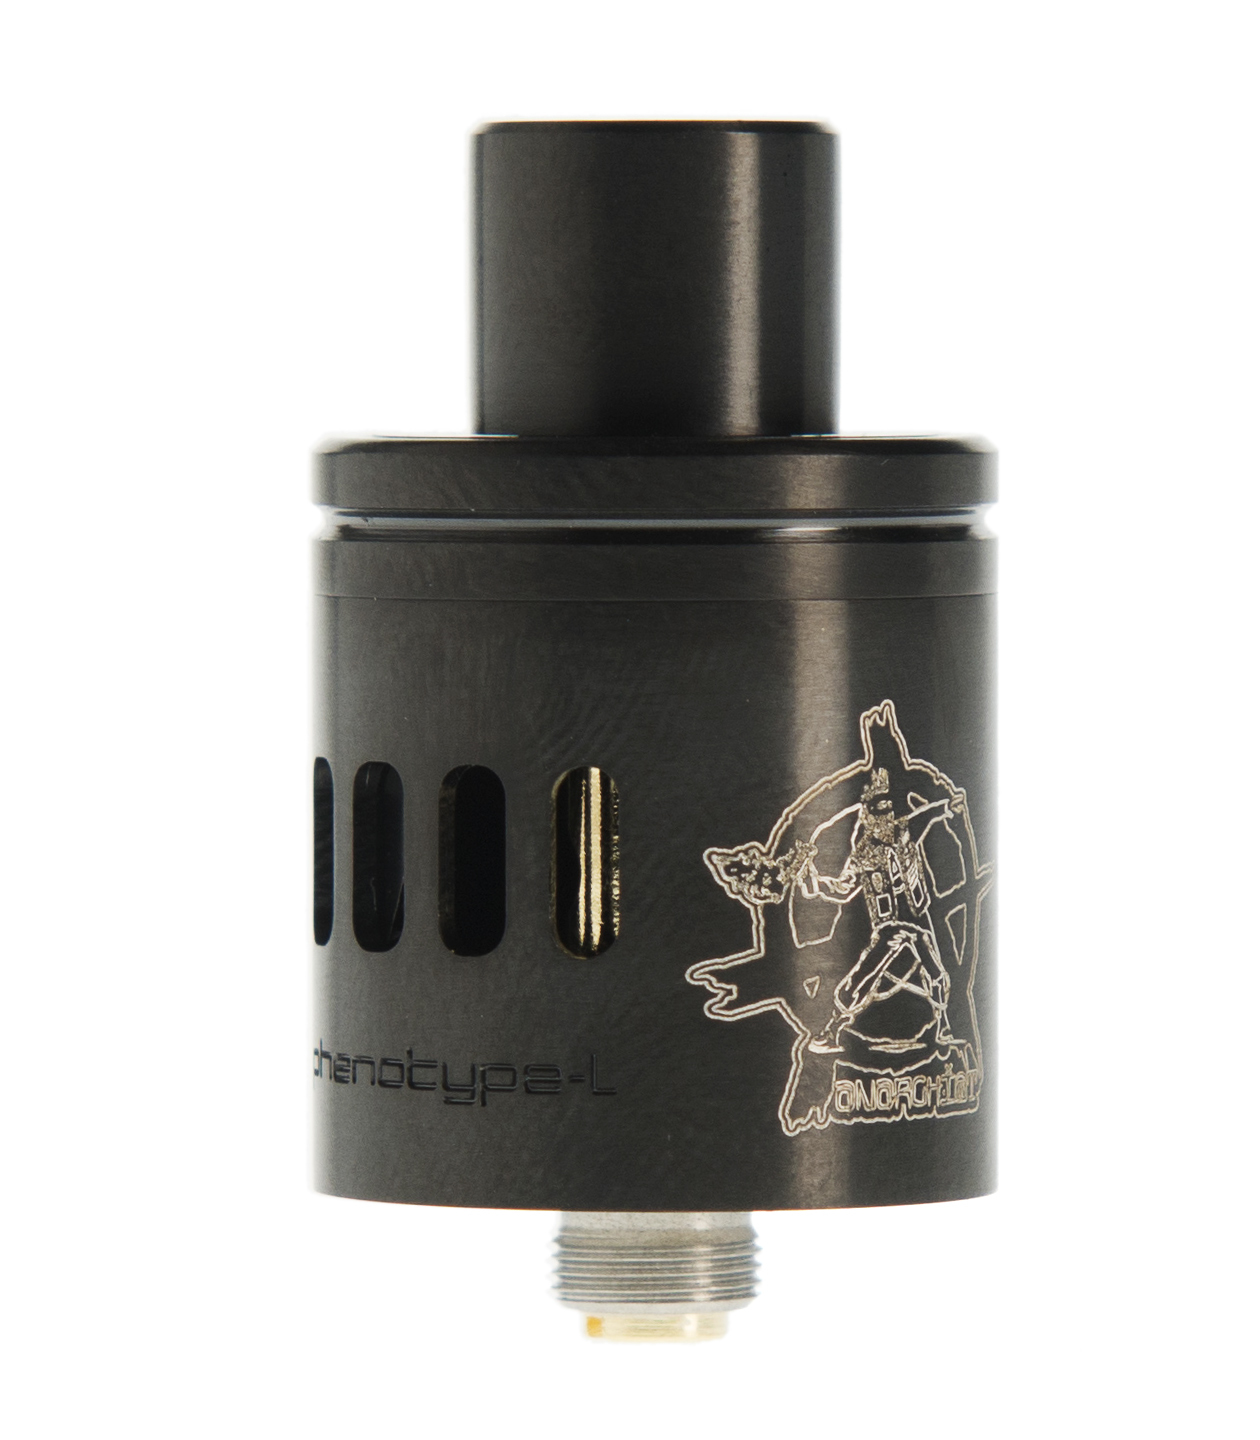 Атомайзер (RDA) Phenotype-L V1.2